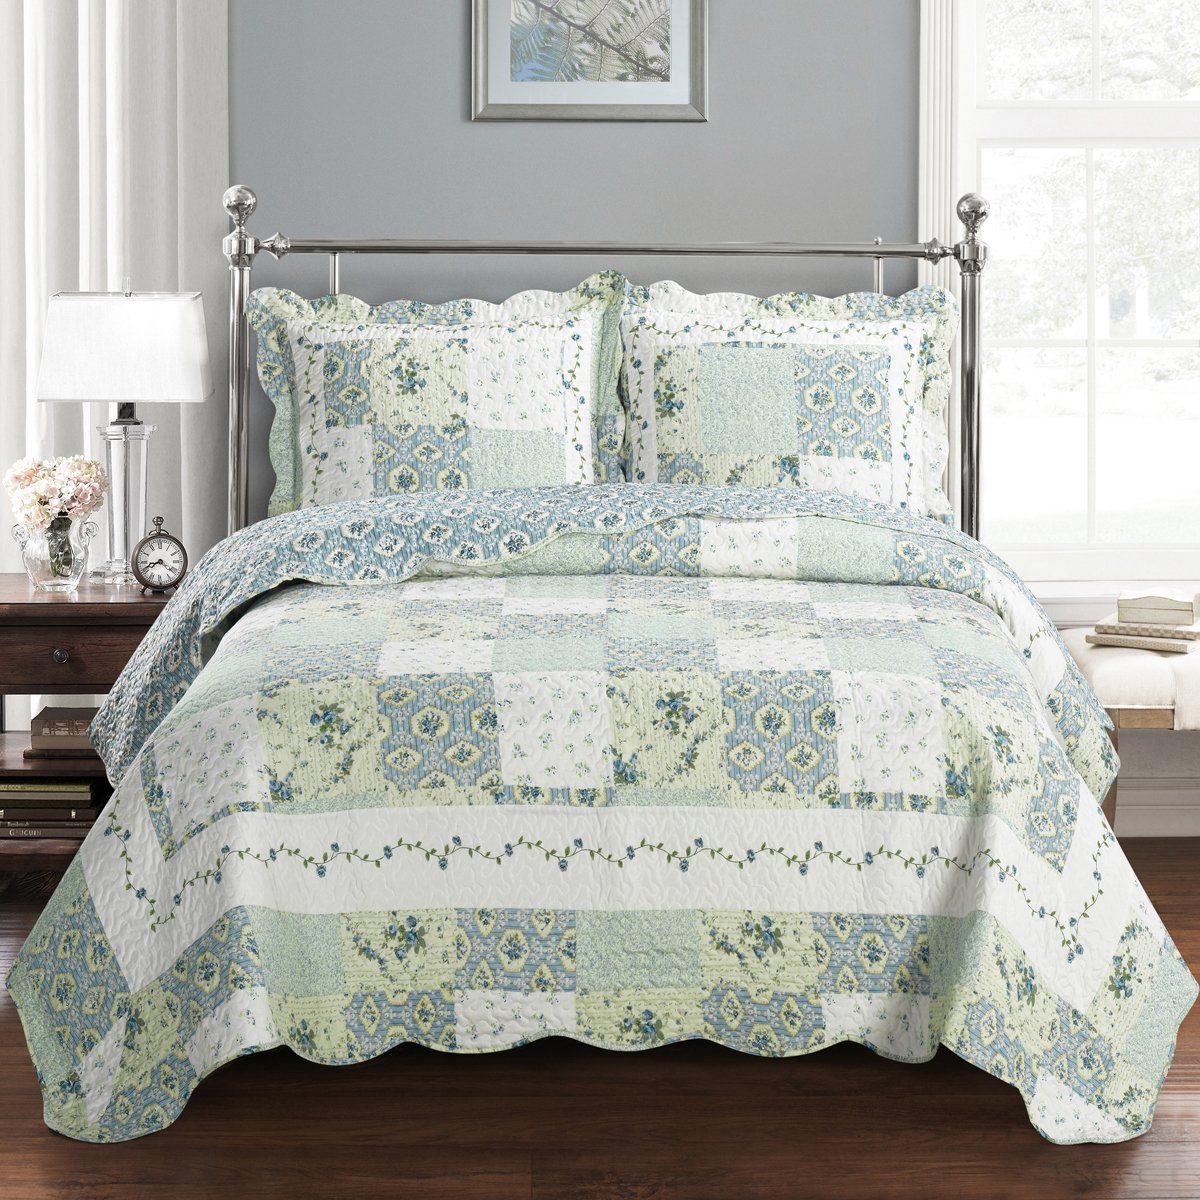 Deluxe Brea Oversized Bedspread Set. Beautiful quilt is decorated with patches of various floral designs Creates the relaxing ambience of a resort in your bedroom. Bed Cover Quilt 2 Pieces Twin Set